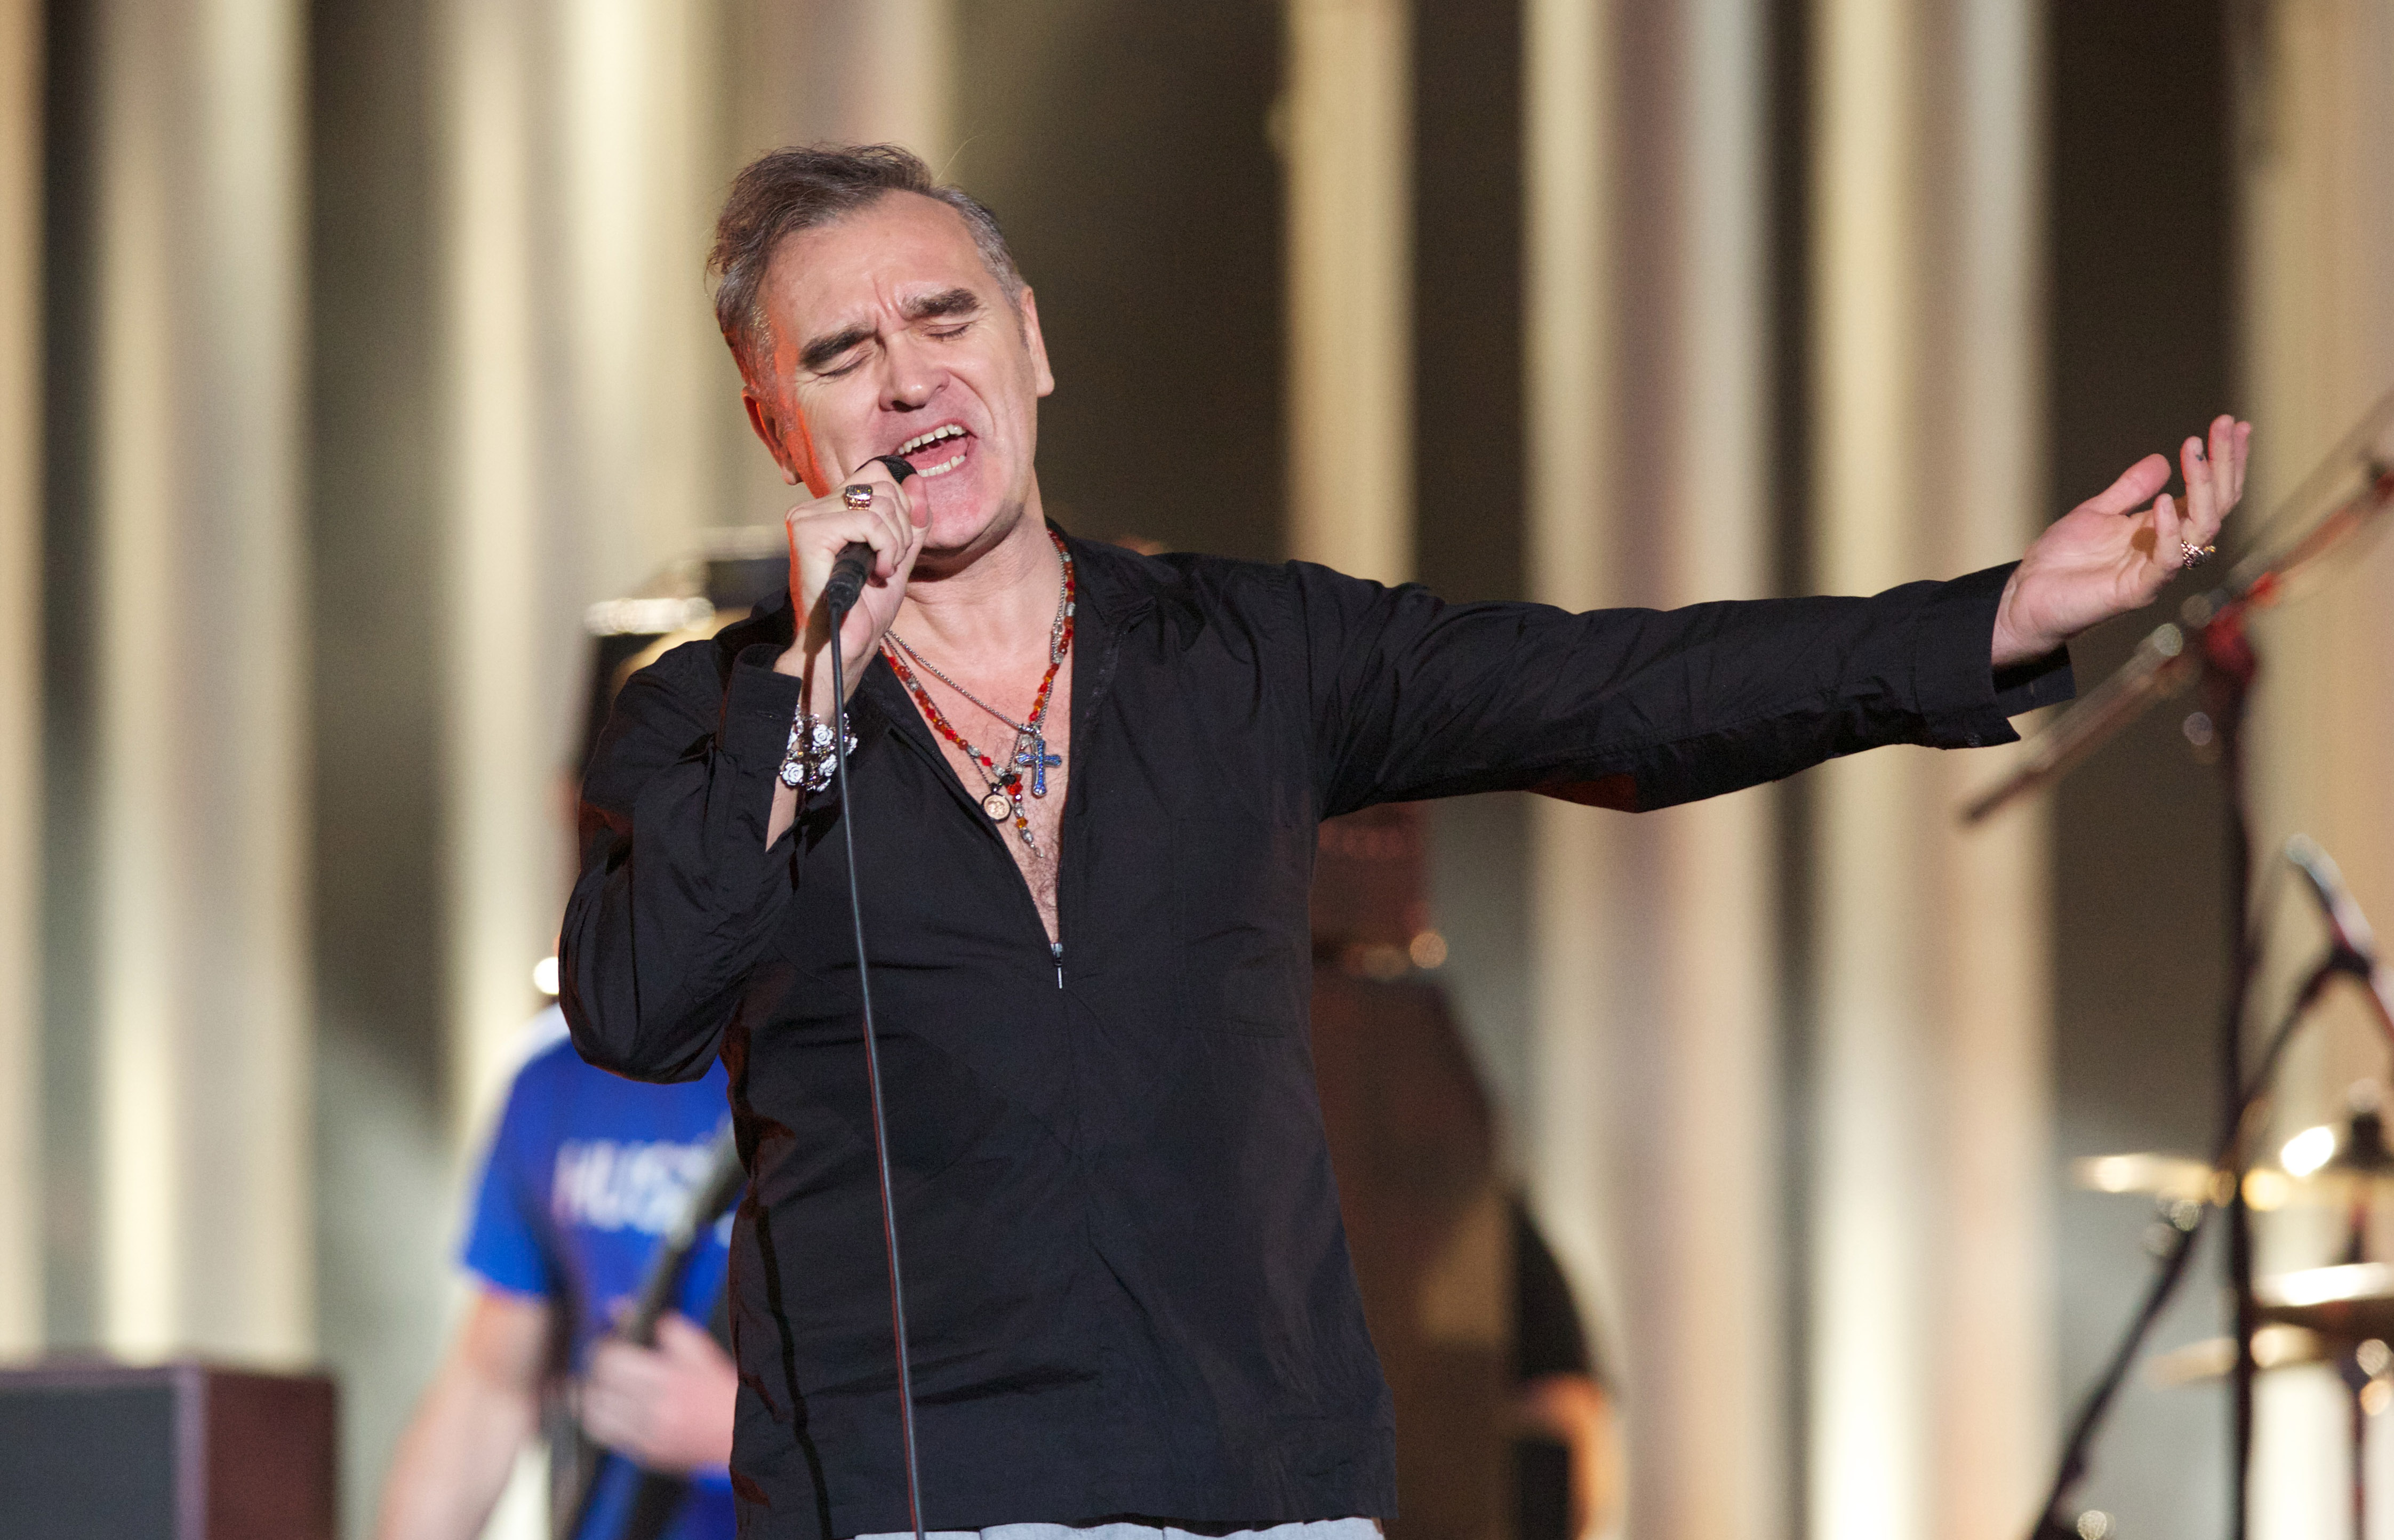 Morrissey Talks About His Health, Sex Appeal and 'Sad' State of Mind